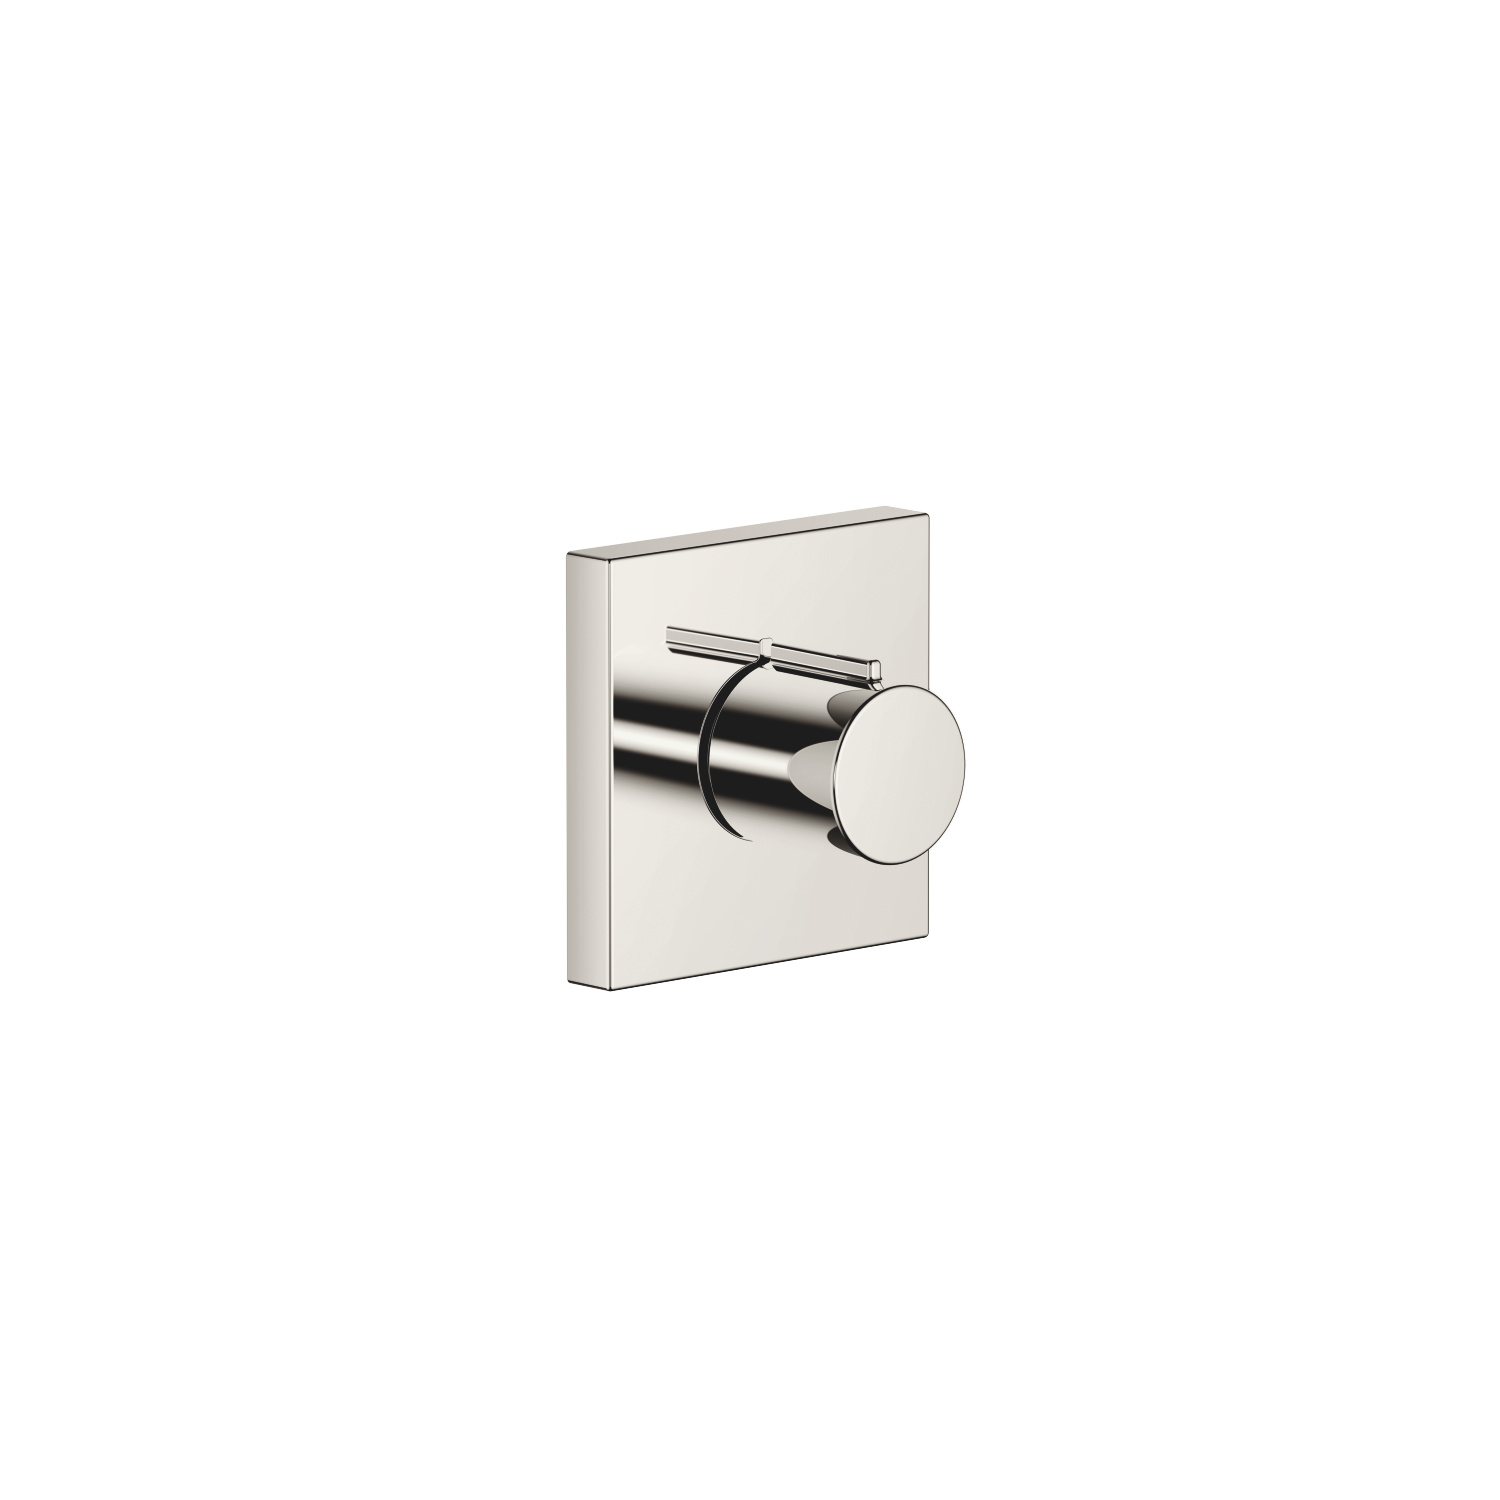 "Wall valve anti-clockwise closing 1/2"" - platinum"